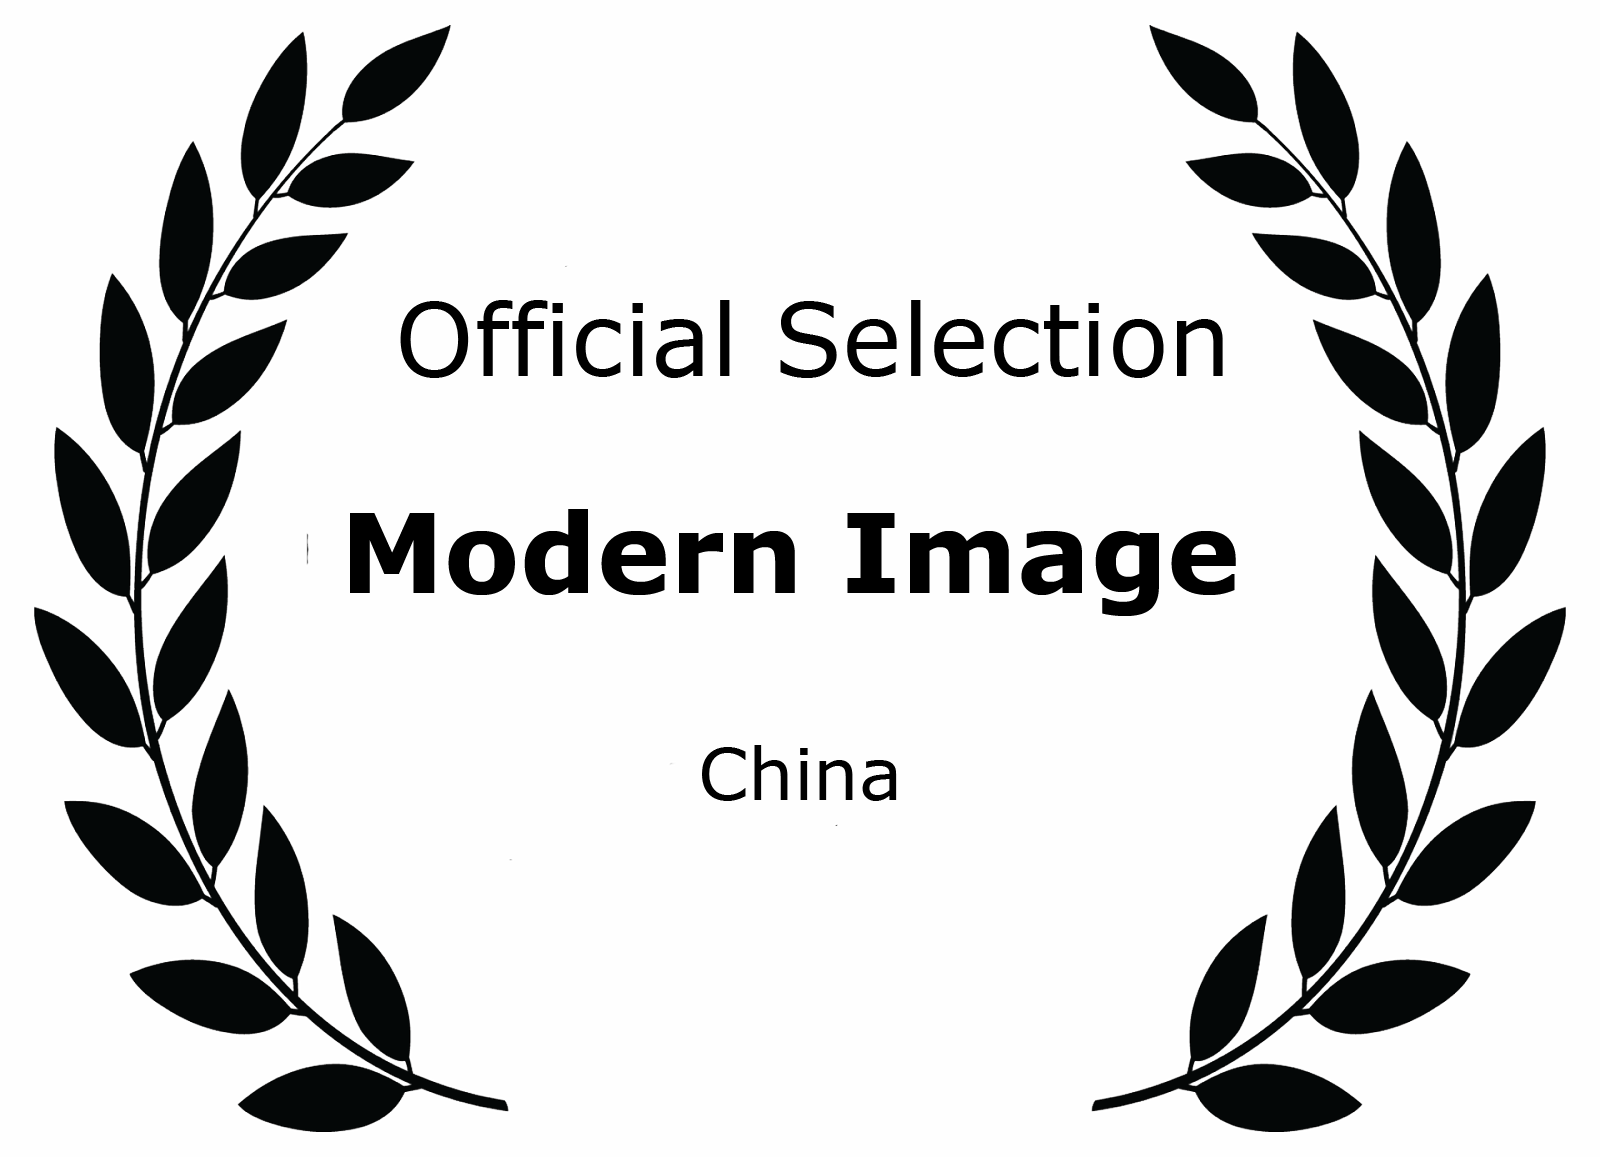 Official Selection Modern Image China 2010